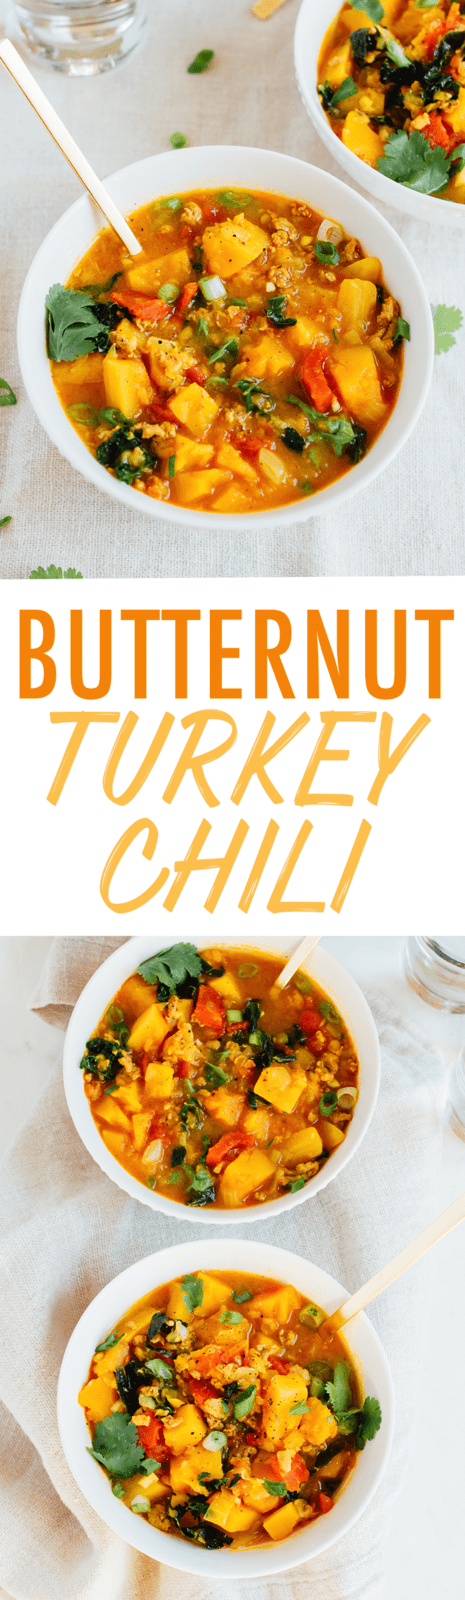 Not your average chili, this butternut squash and turkey chili features red lentils and is simmered in a creamy coconut milk and tomato broth. Make this in your pressure cooker or on the stove top!